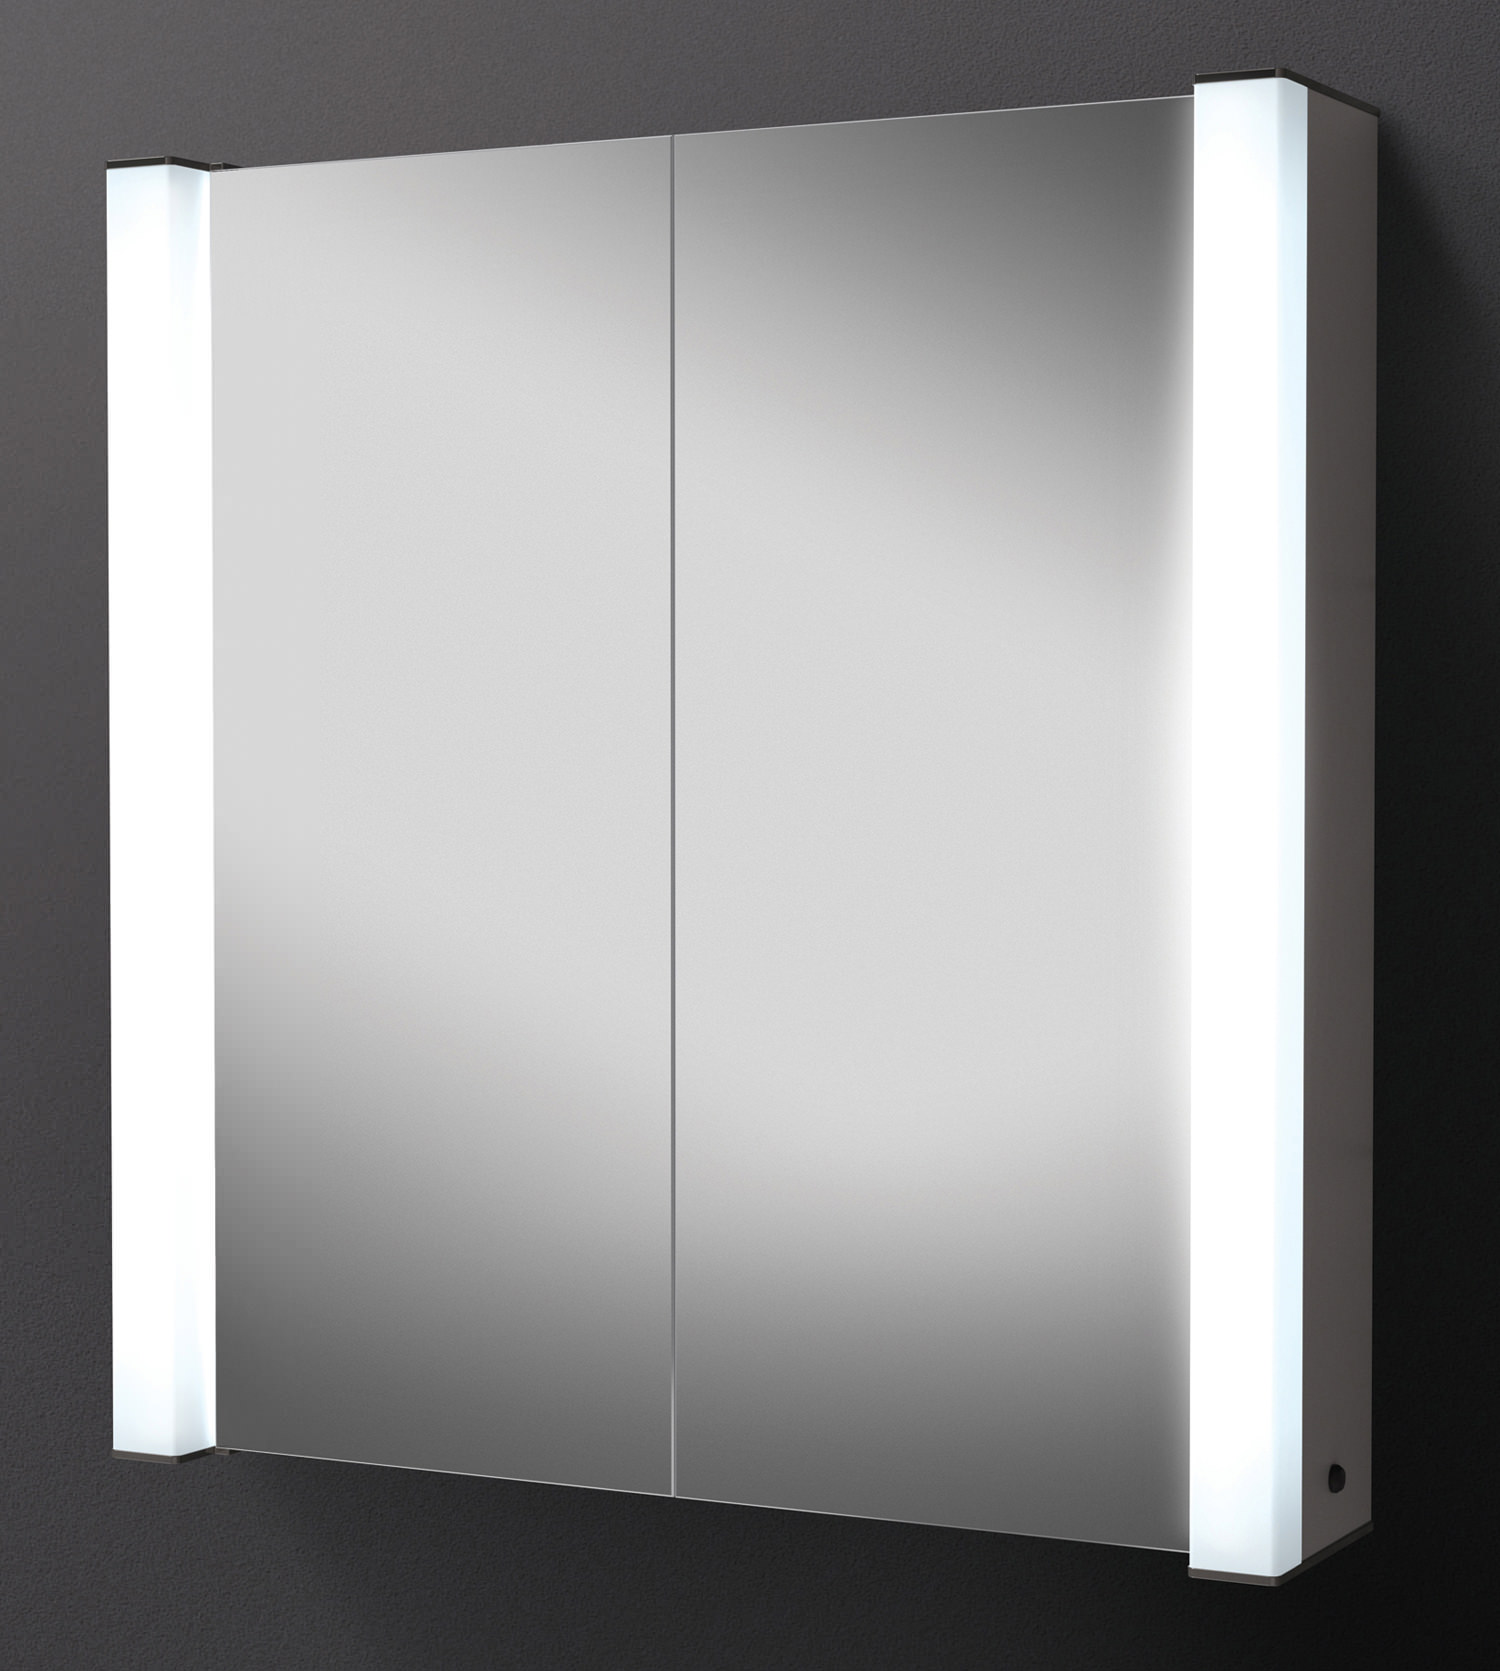 illuminated bathroom mirror cabinets hib photec door illuminated aluminium mirrored 17774